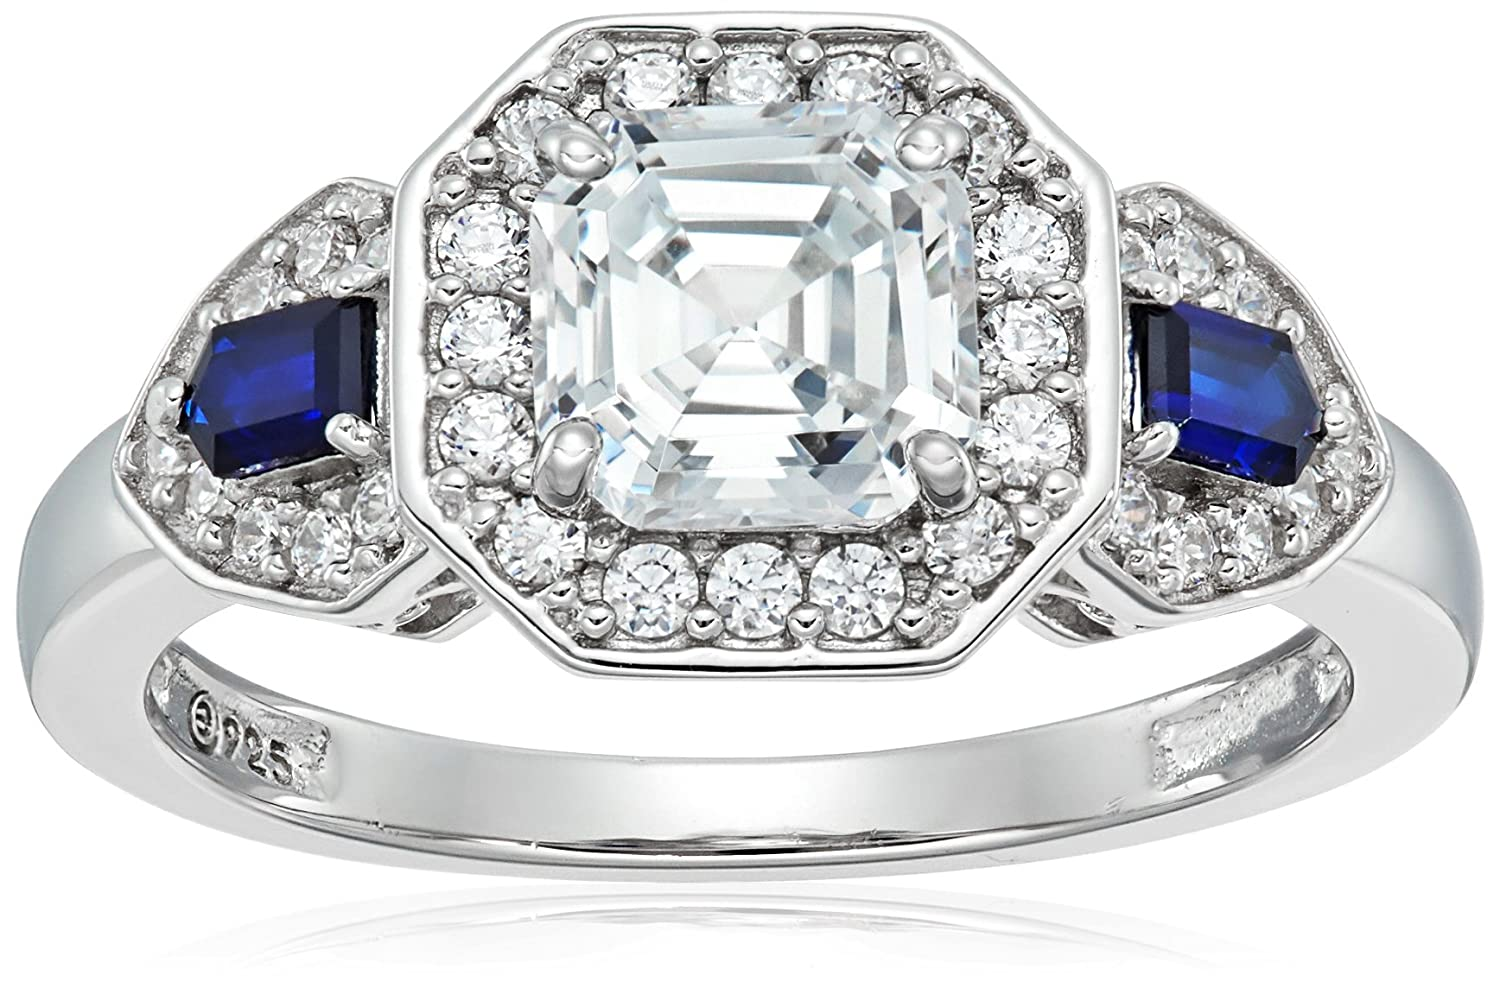 Platinum-Plated Sterling Silver Swarovski Zirconia Antique Asscher-Cut and Created Sapphire Ring Amazon Collection R1891206_120_050-Parent